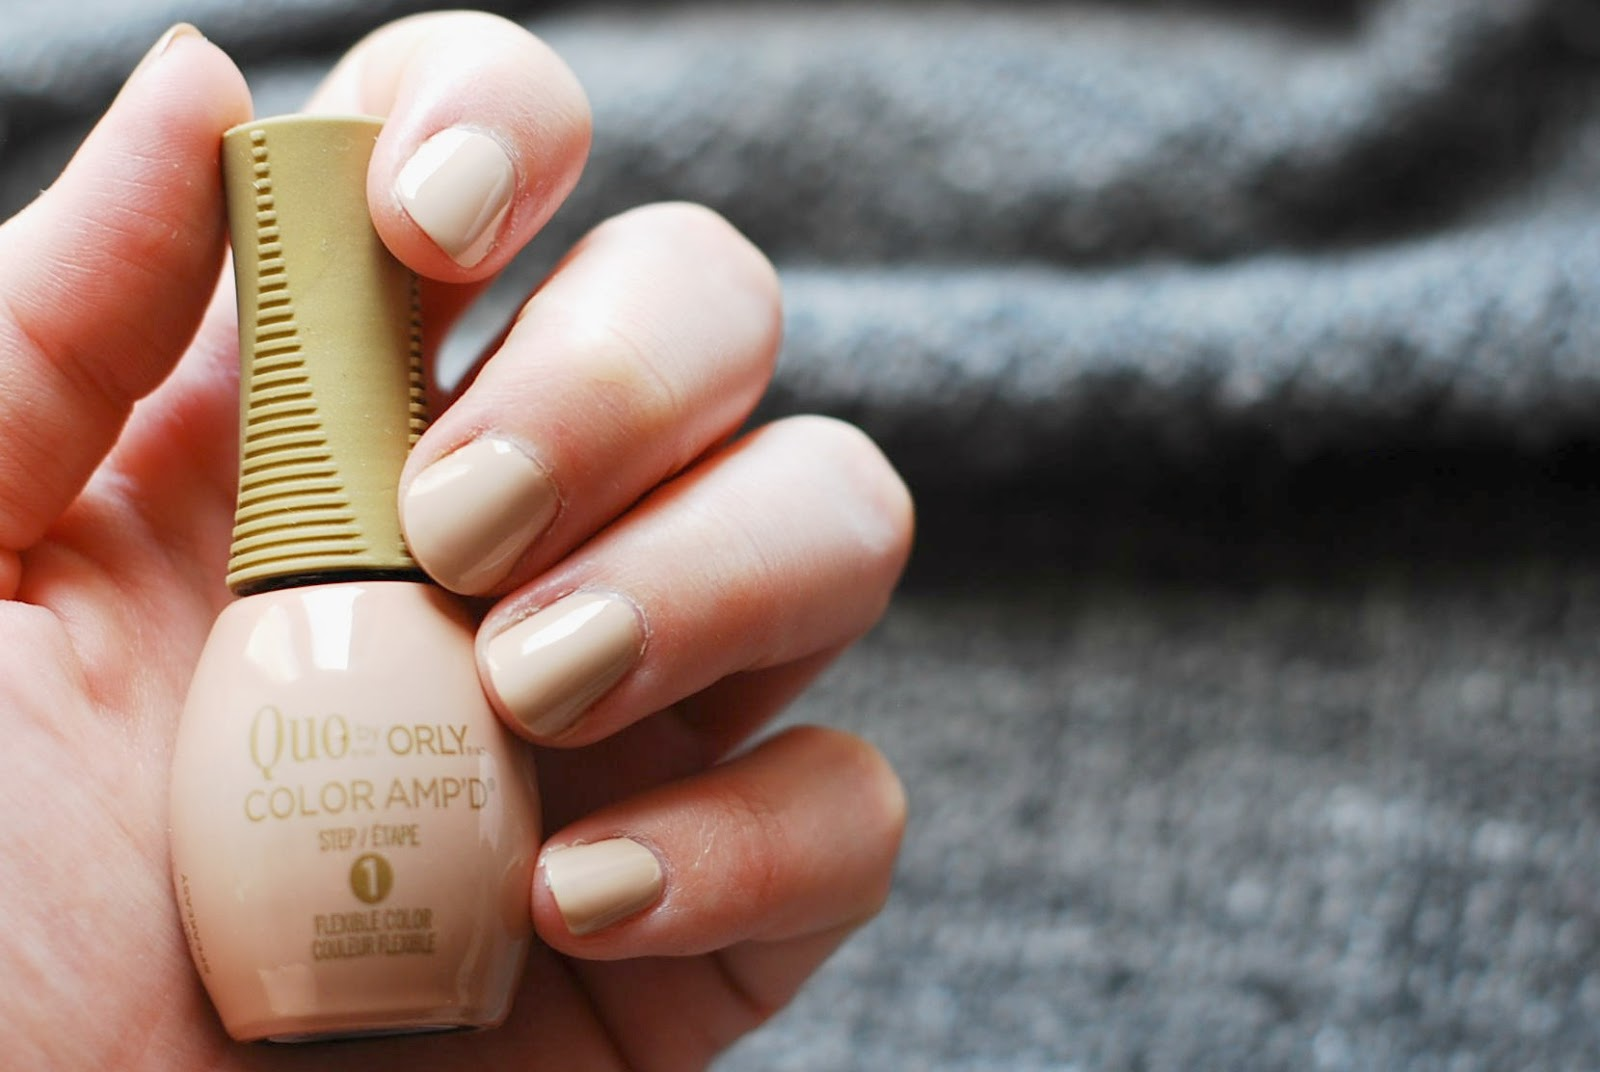 Quo by Orly Color Amp'd nail polish review blog Speakeasy